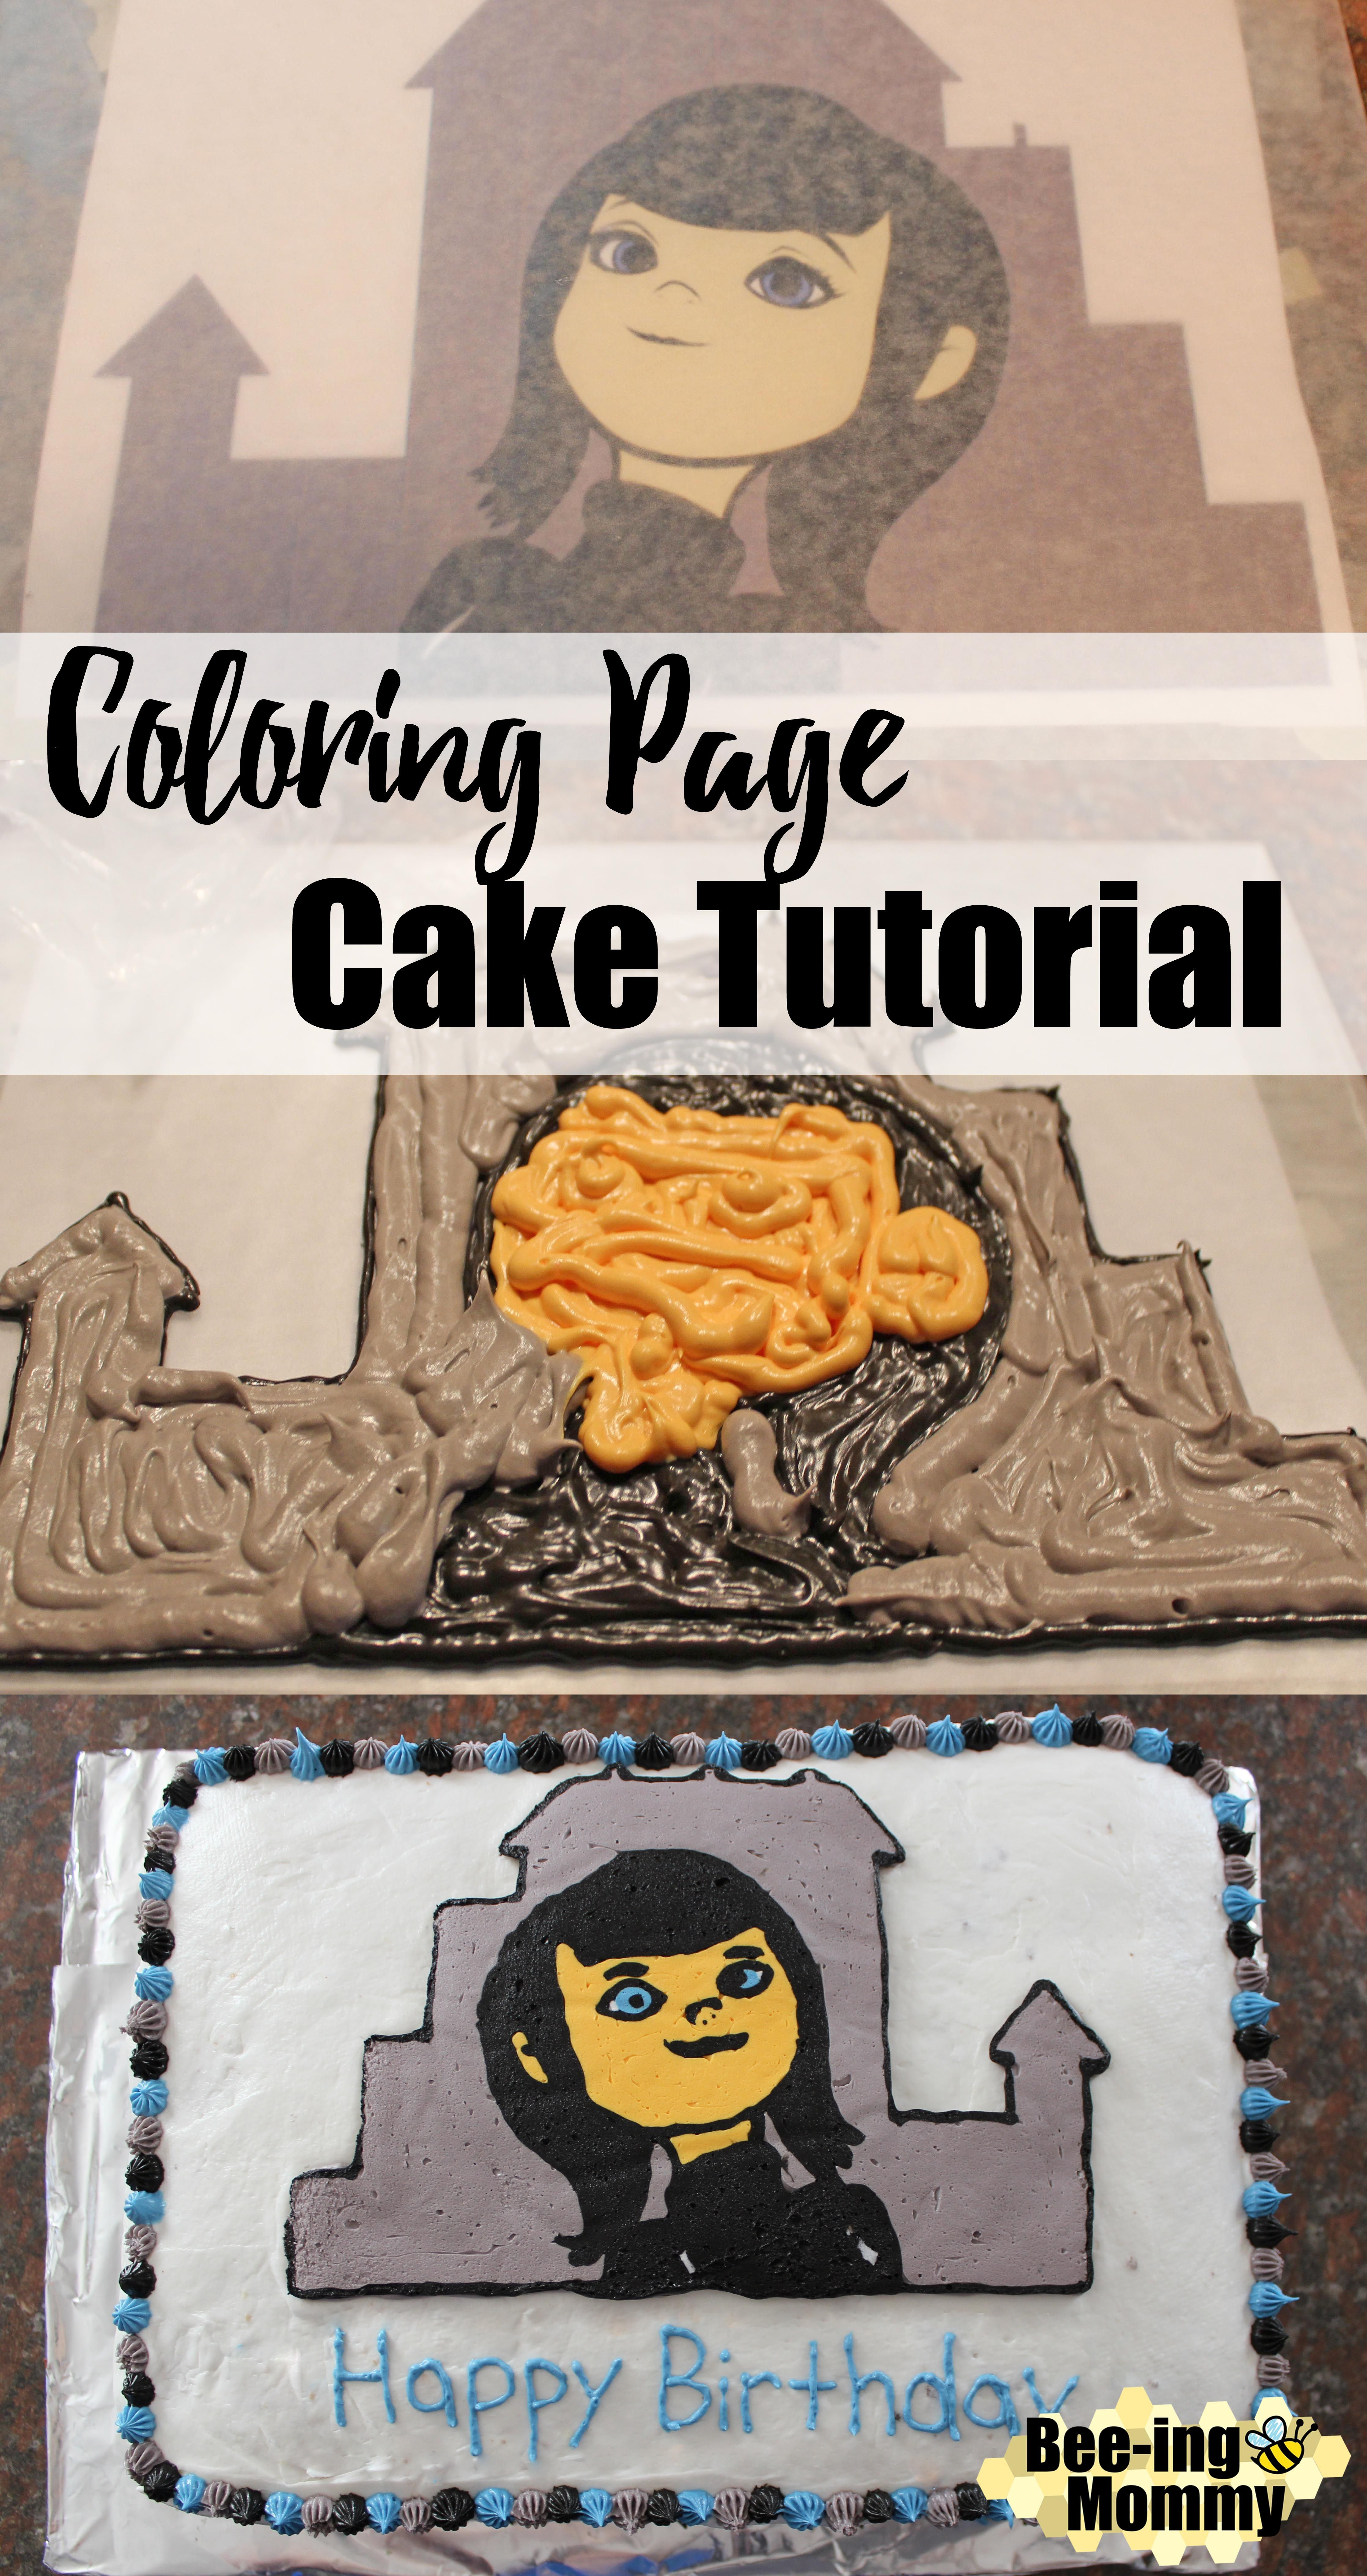 Coloring Page Cake Tutorial For Diy Character Cakes For Your Child S Birthday Party Cake Decorating Designs Cake Tutorial Cake Decorating Frosting